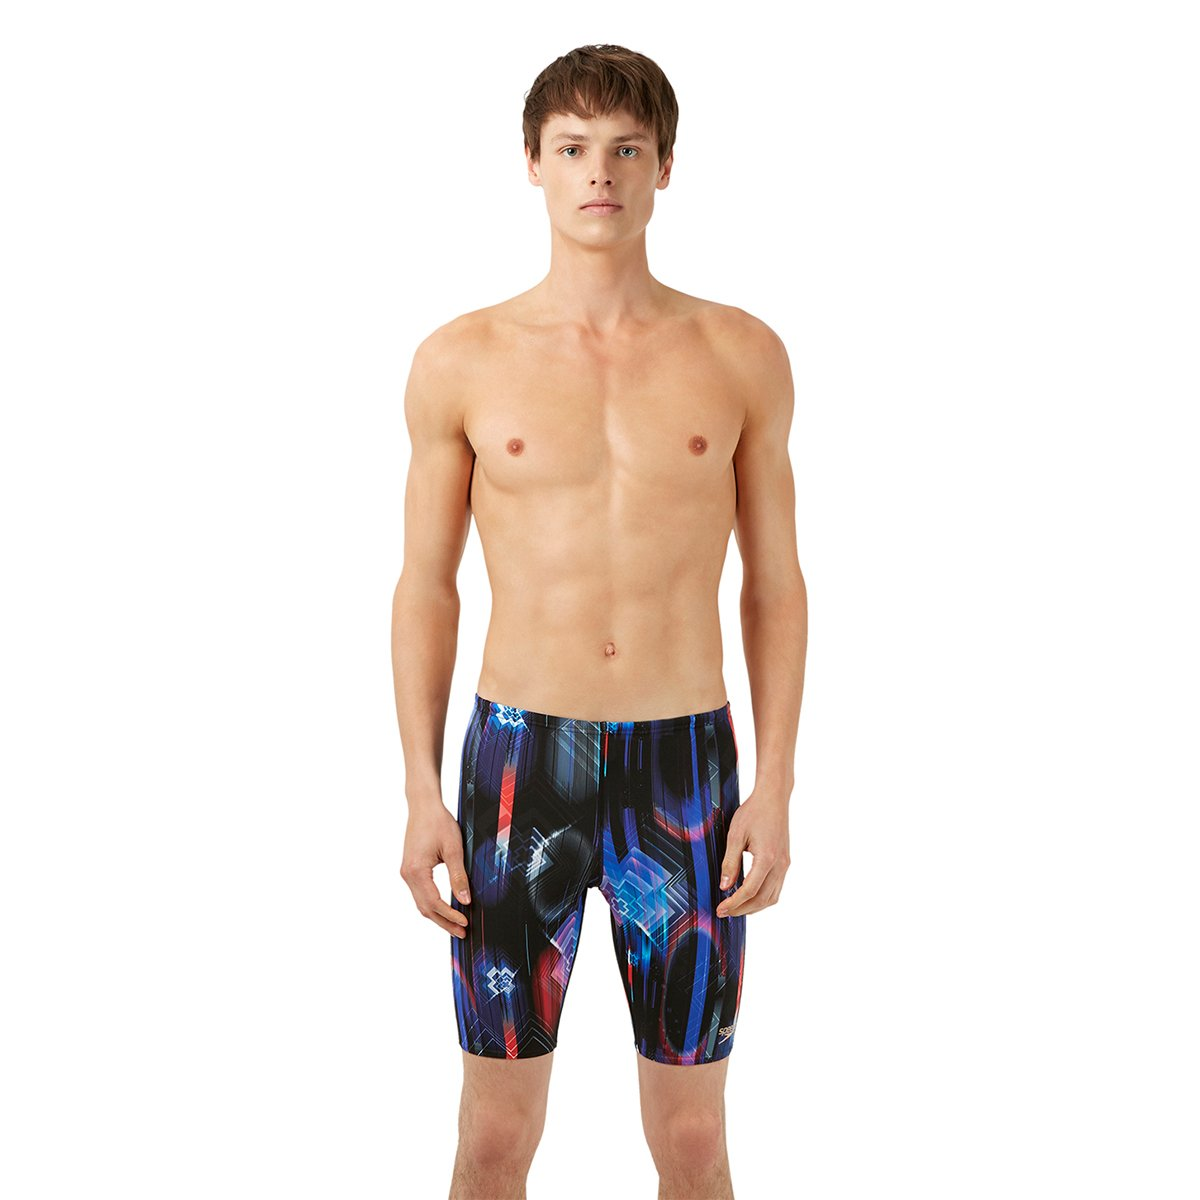 Speedo Mens Endurance + Allover Digital Jammer Print 1 - Black / Gravity / Turquoise endurance e300